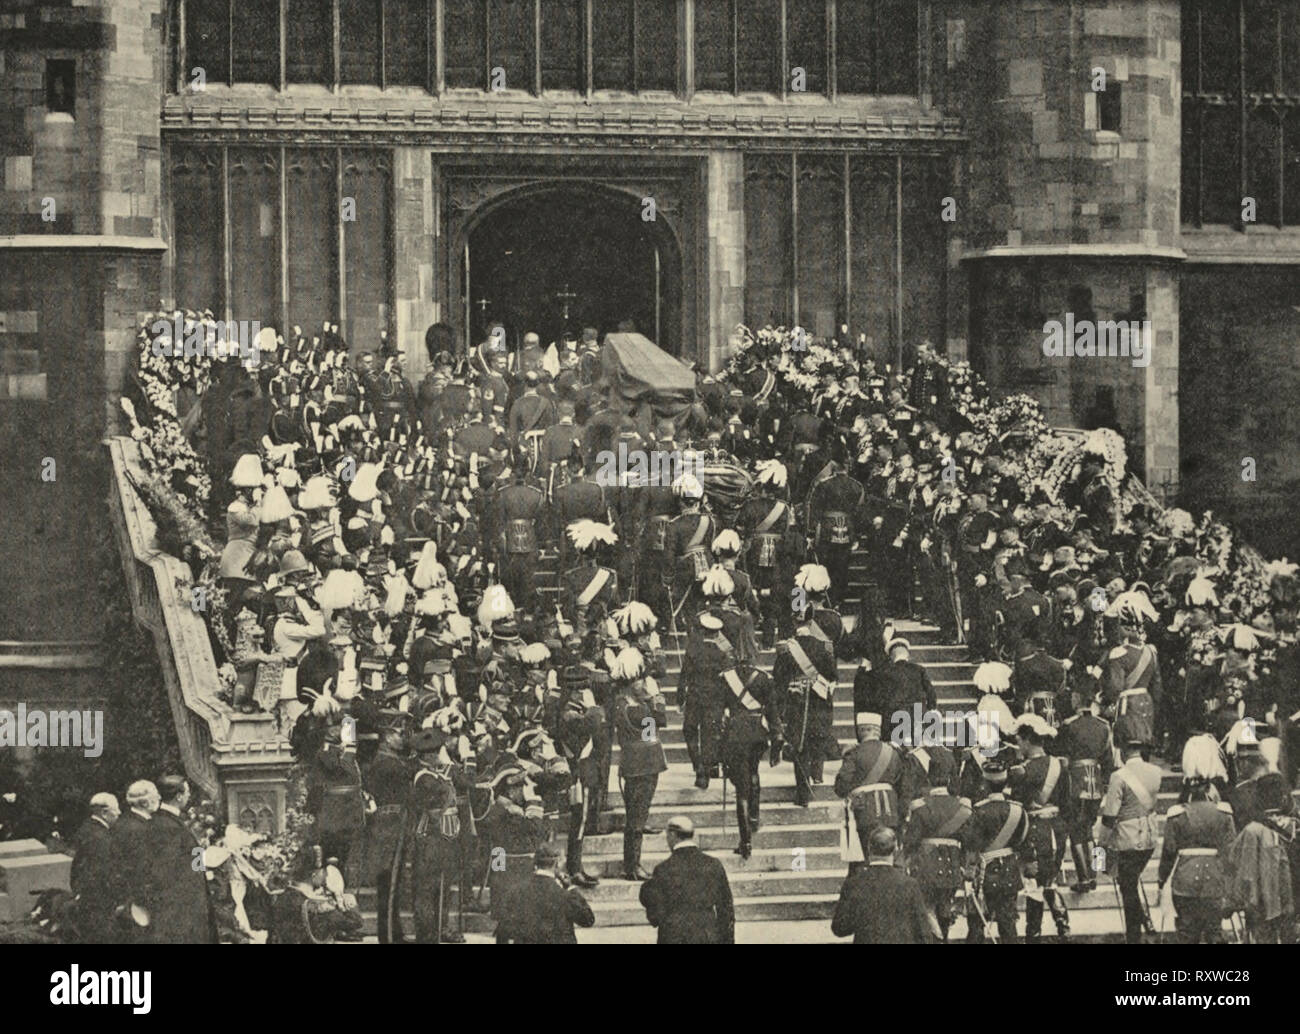 The coffin of King Edward VII being carried into St. George's Chapel, Windsor. 1910 - Stock Image